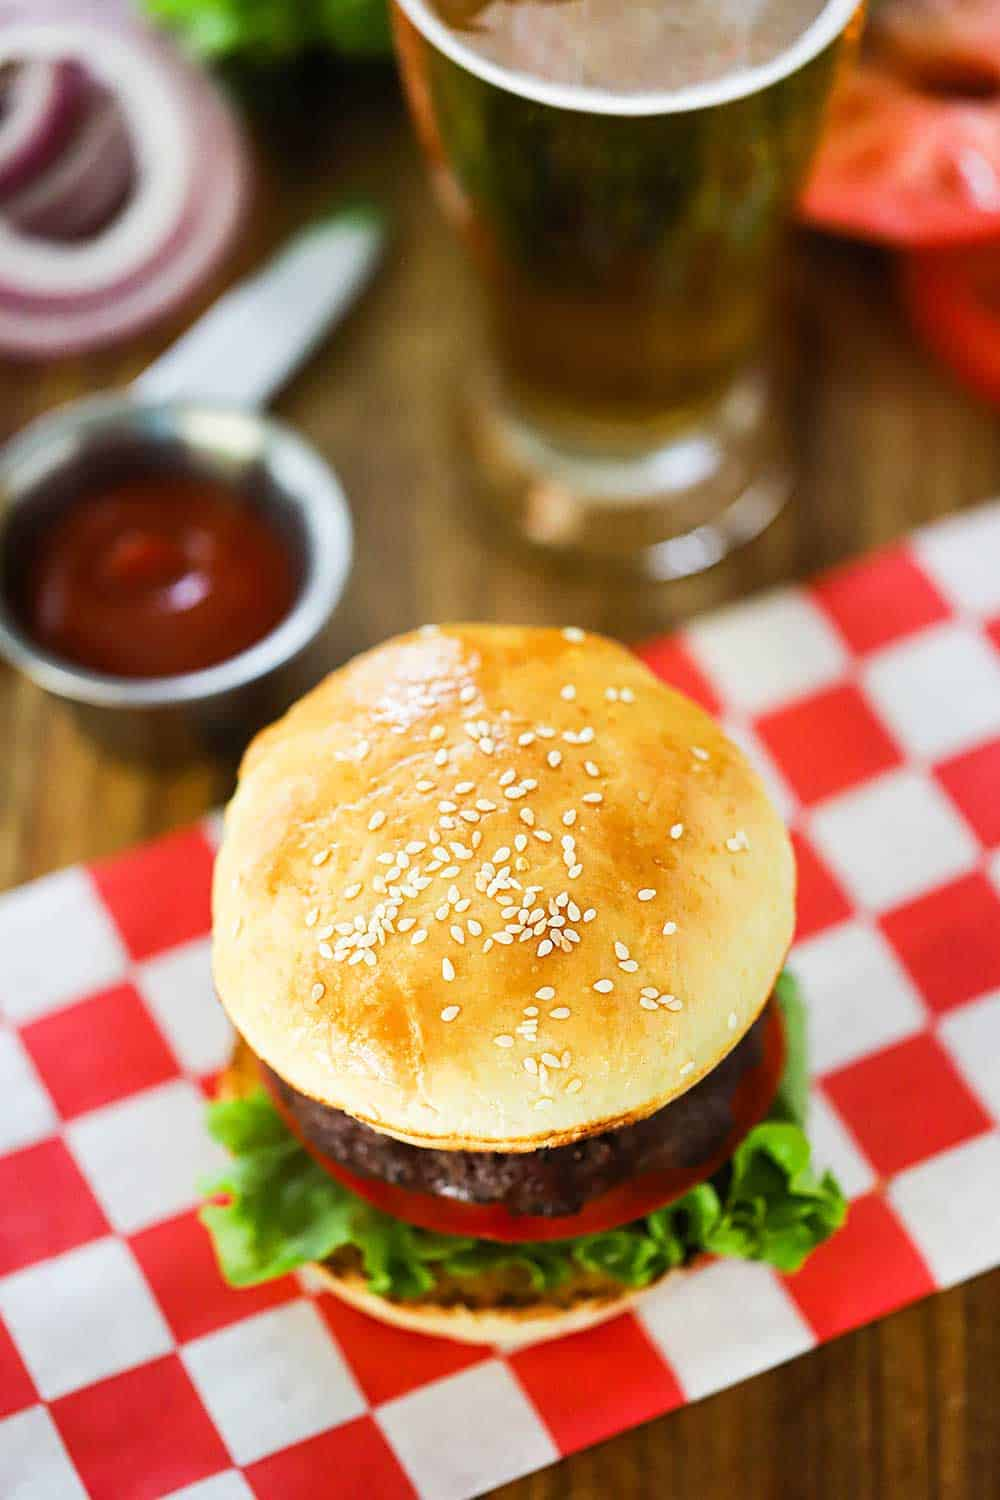 A hamburger sitting on top of a red checkered napkin and next to a small bowl of ketchup.